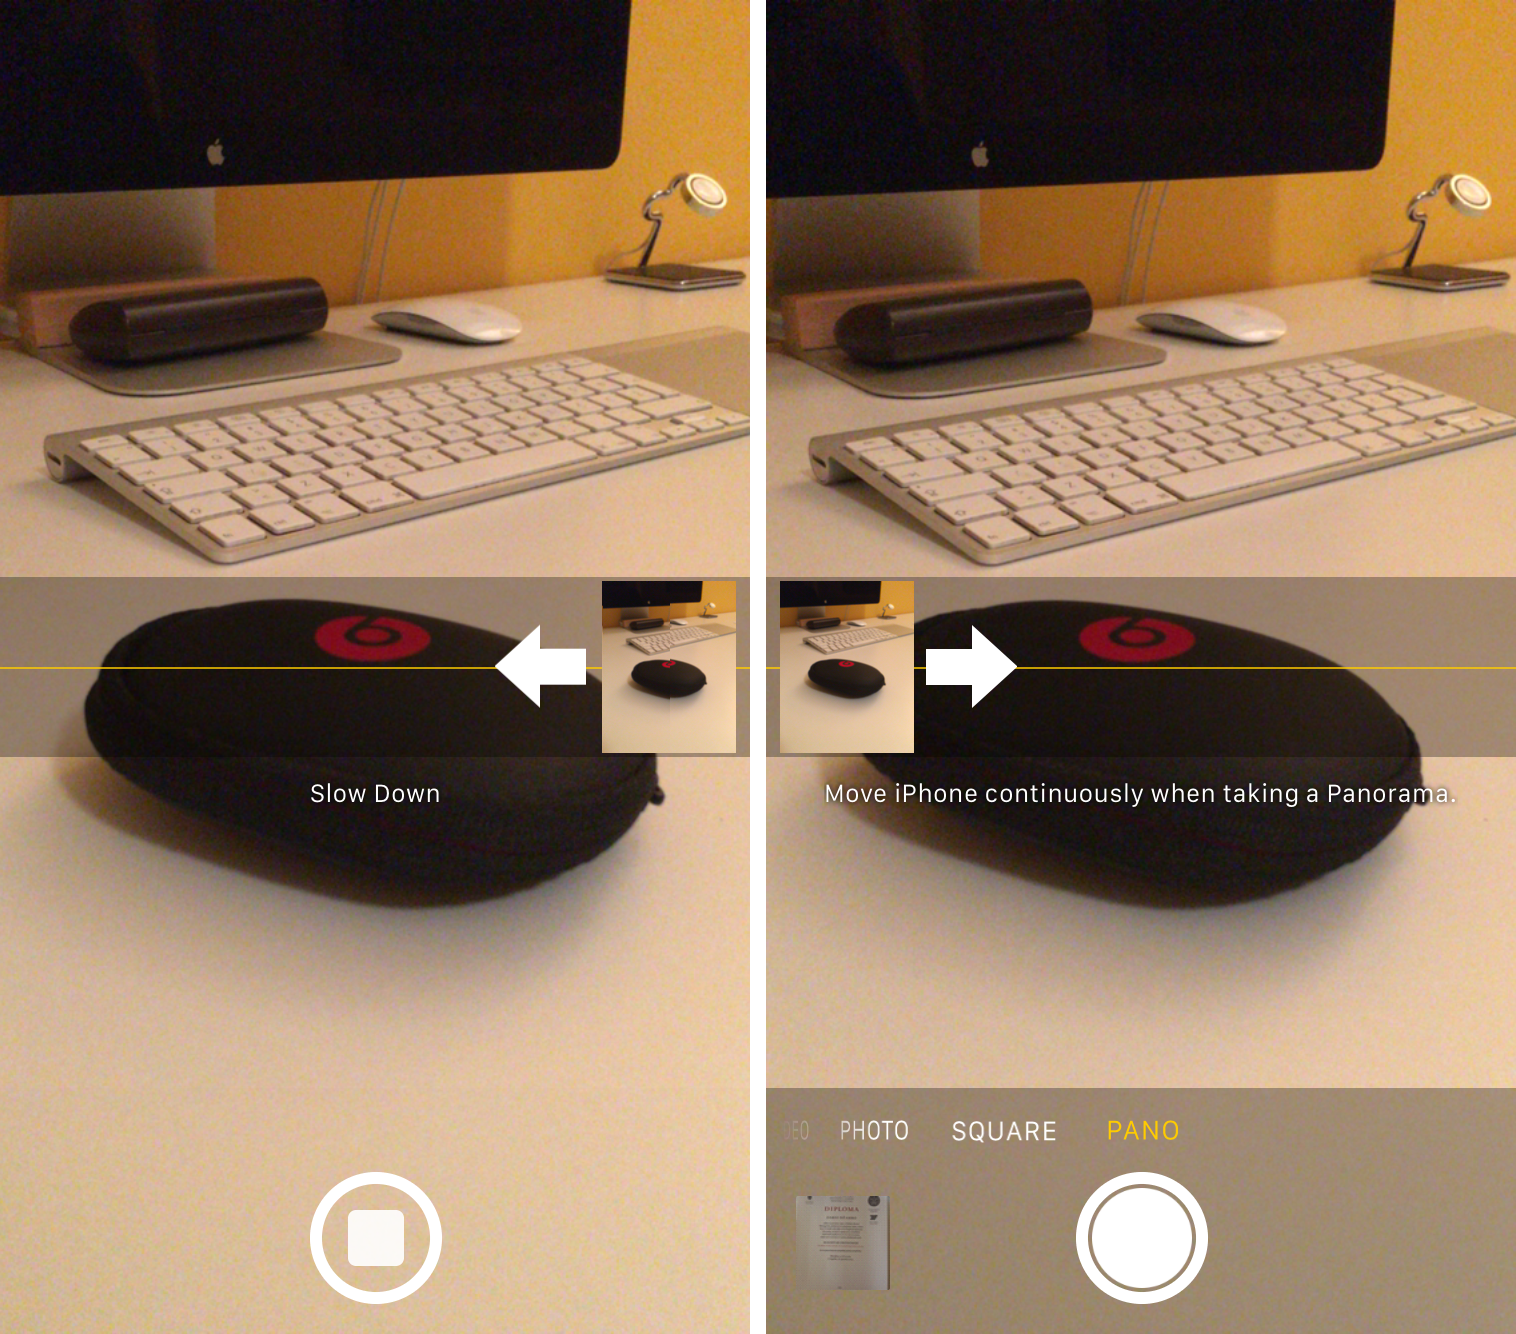 How to switch direction Panorama mode iPhone screenshot 002